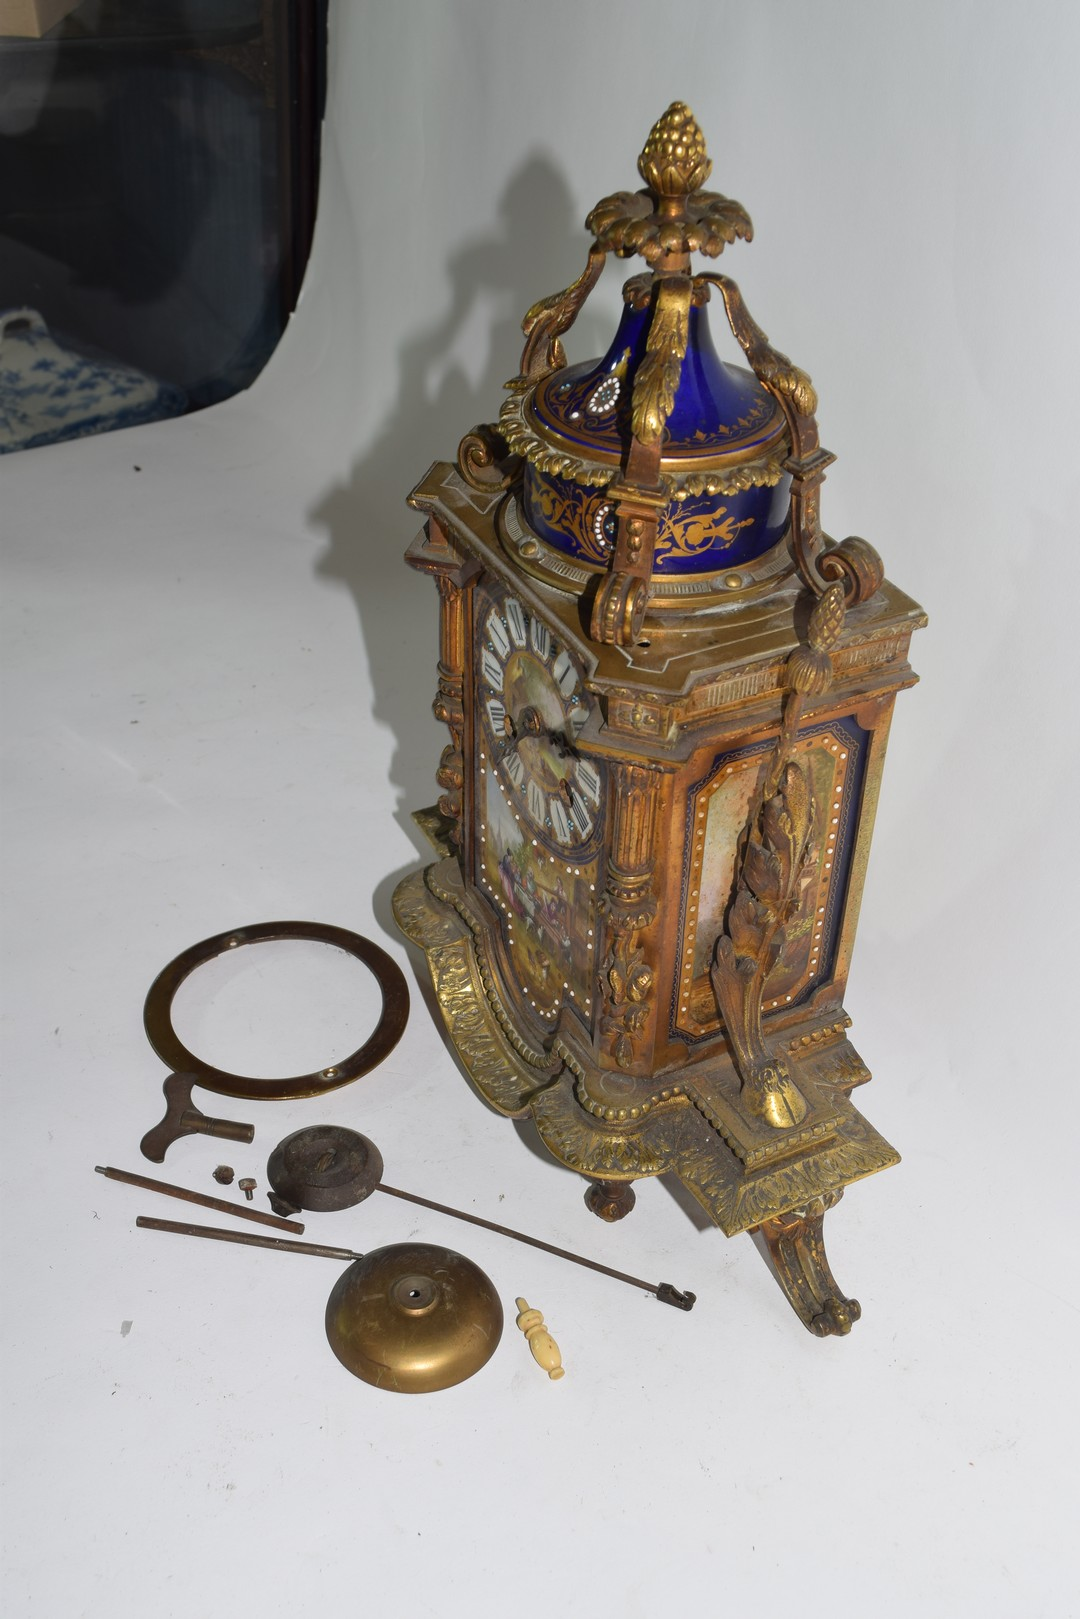 19th century French gilt metal clock with Sevres type porcelain panels - Image 3 of 5